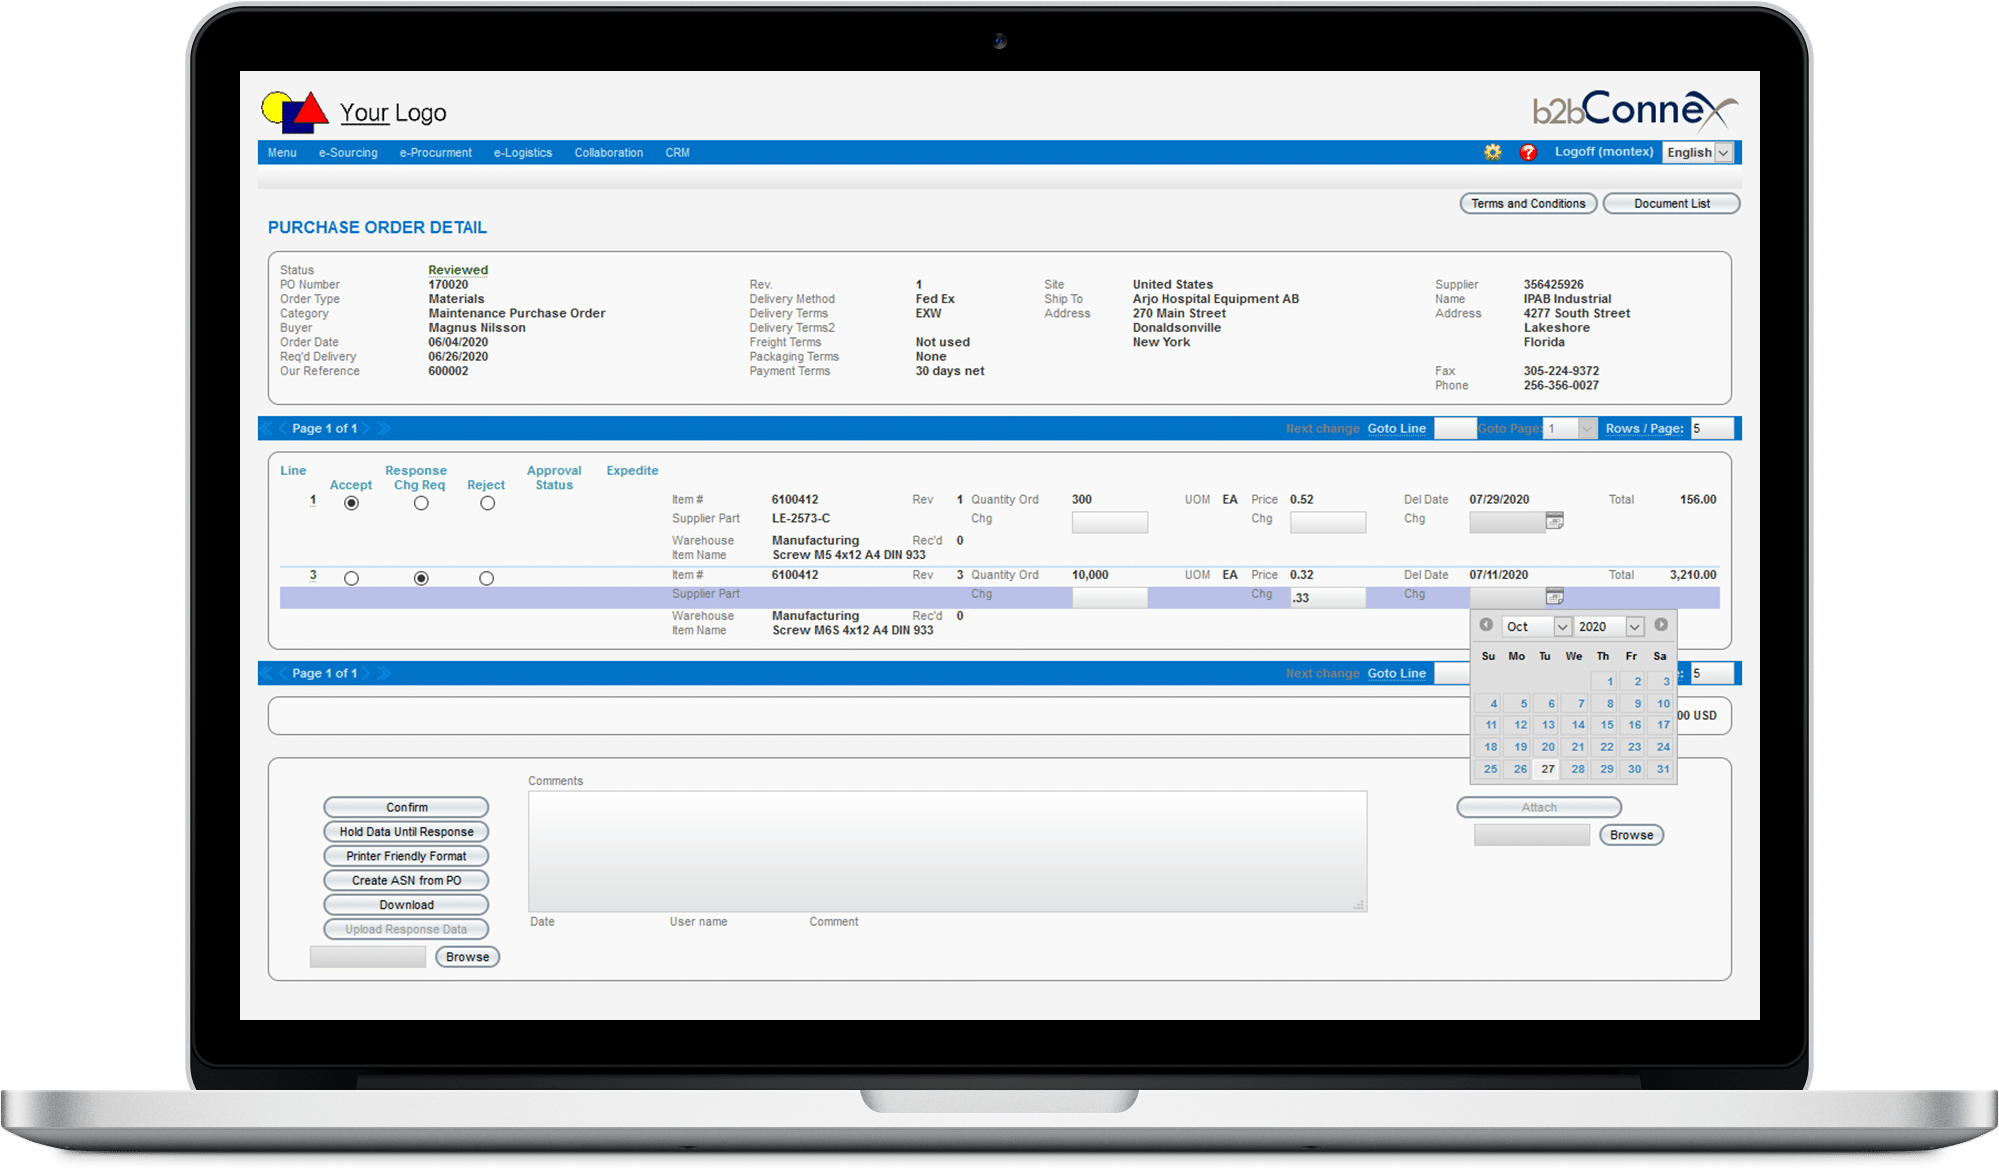 Best MRO/CRM Purchase Portal for Companies